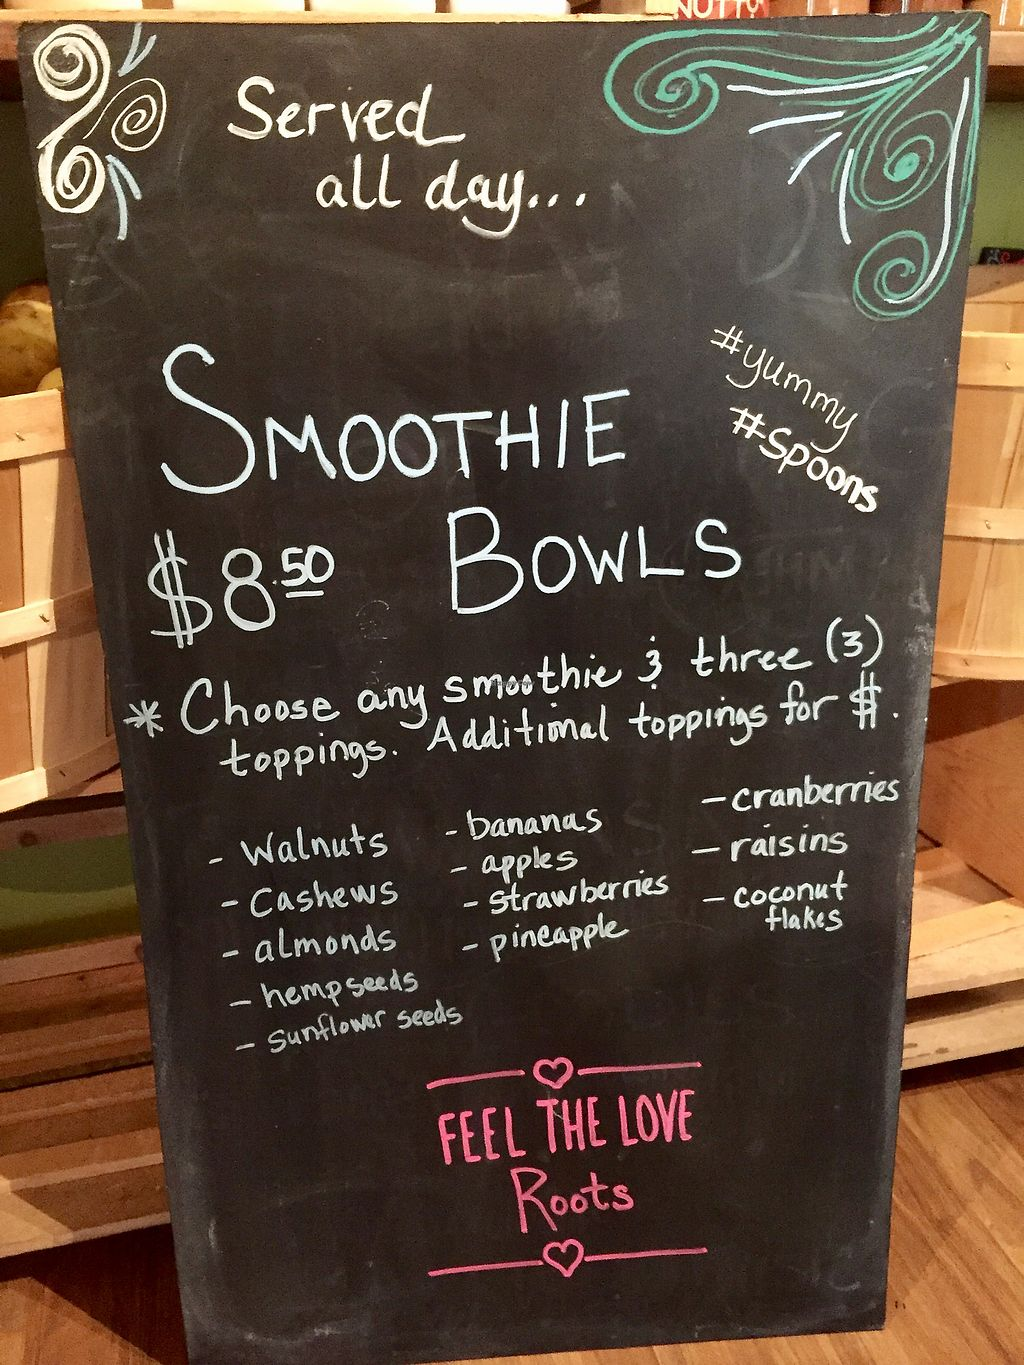 """Photo of Roots Organic Juice Cafe  by <a href=""""/members/profile/happycowgirl"""">happycowgirl</a> <br/>Smoothie Bowls! <br/> October 11, 2017  - <a href='/contact/abuse/image/33022/314336'>Report</a>"""